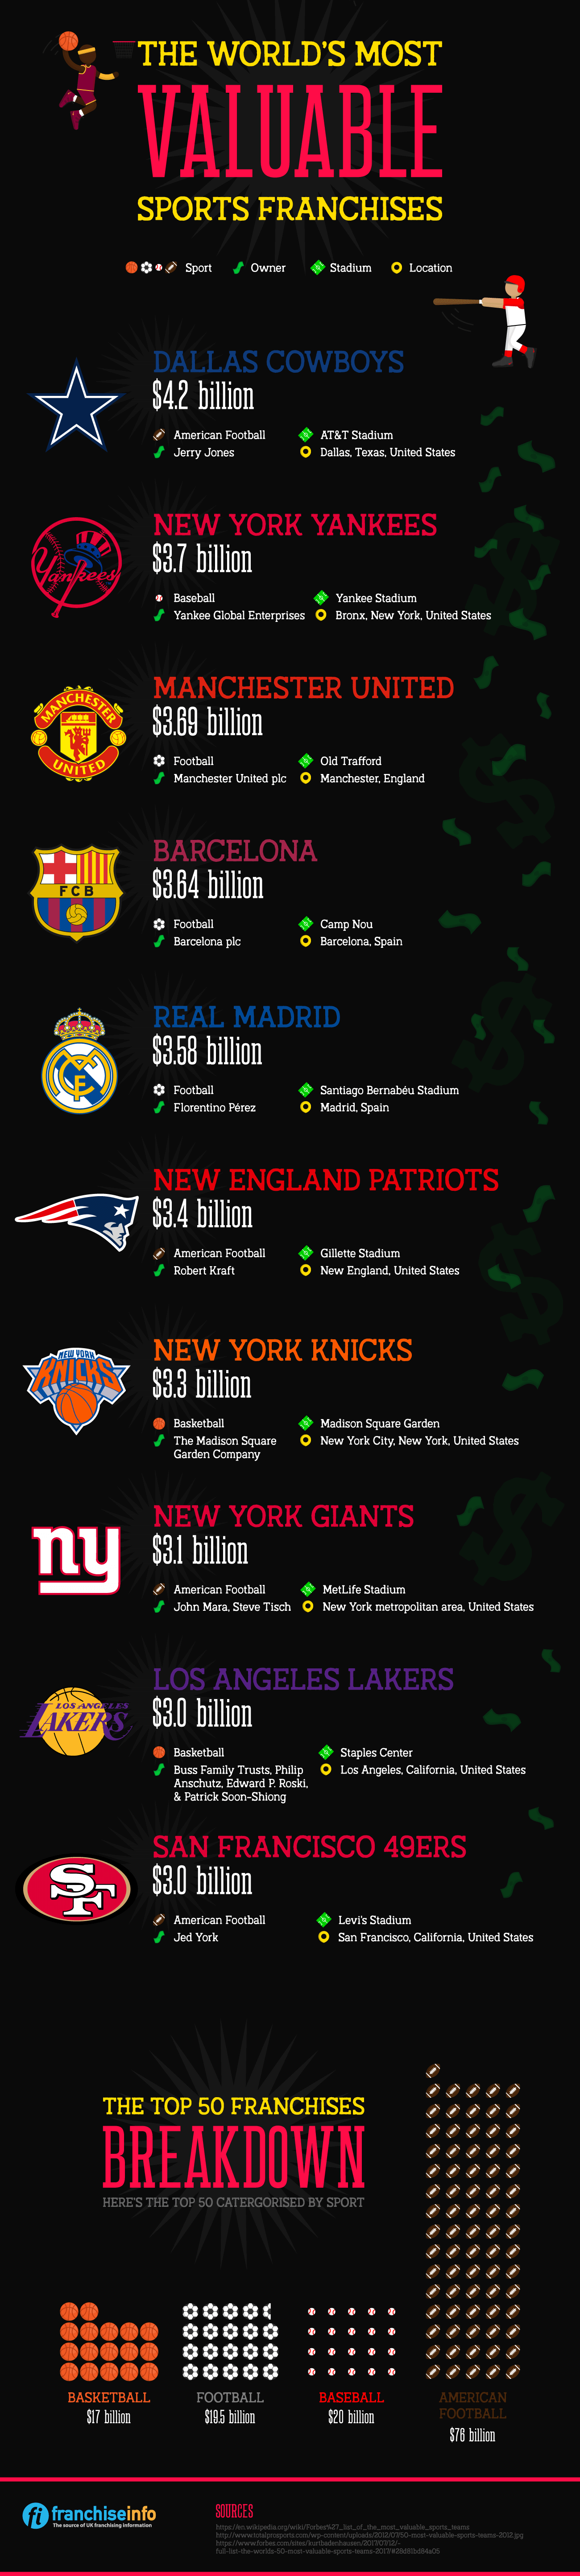 World's Most Valuable Sports Franchises Infographic